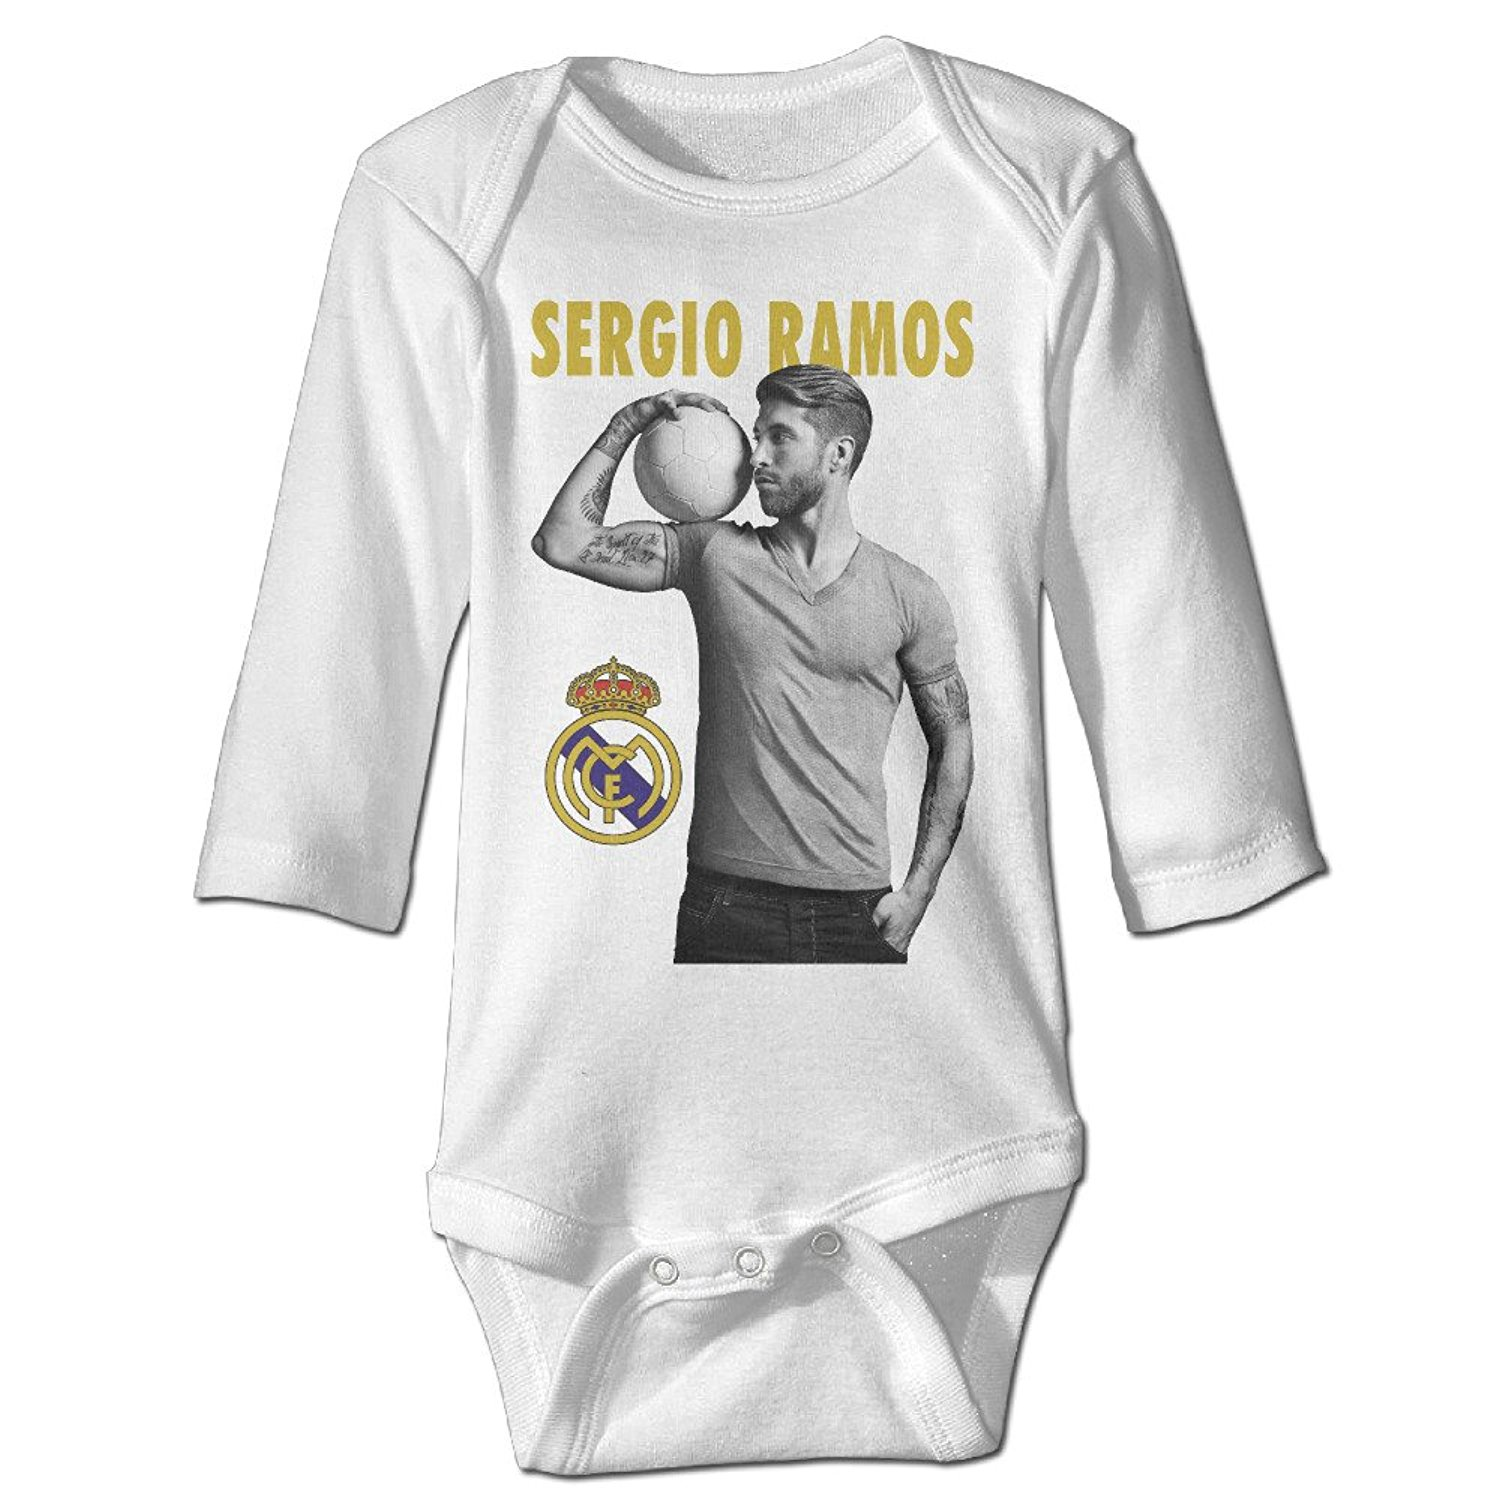 d13420a33 Get Quotations · PGiG Baby s Sergio Ramos Real Madrid CF Hanging Bodysuit  Romper Playsuit Outfits Clothes Climbing Clothes Long